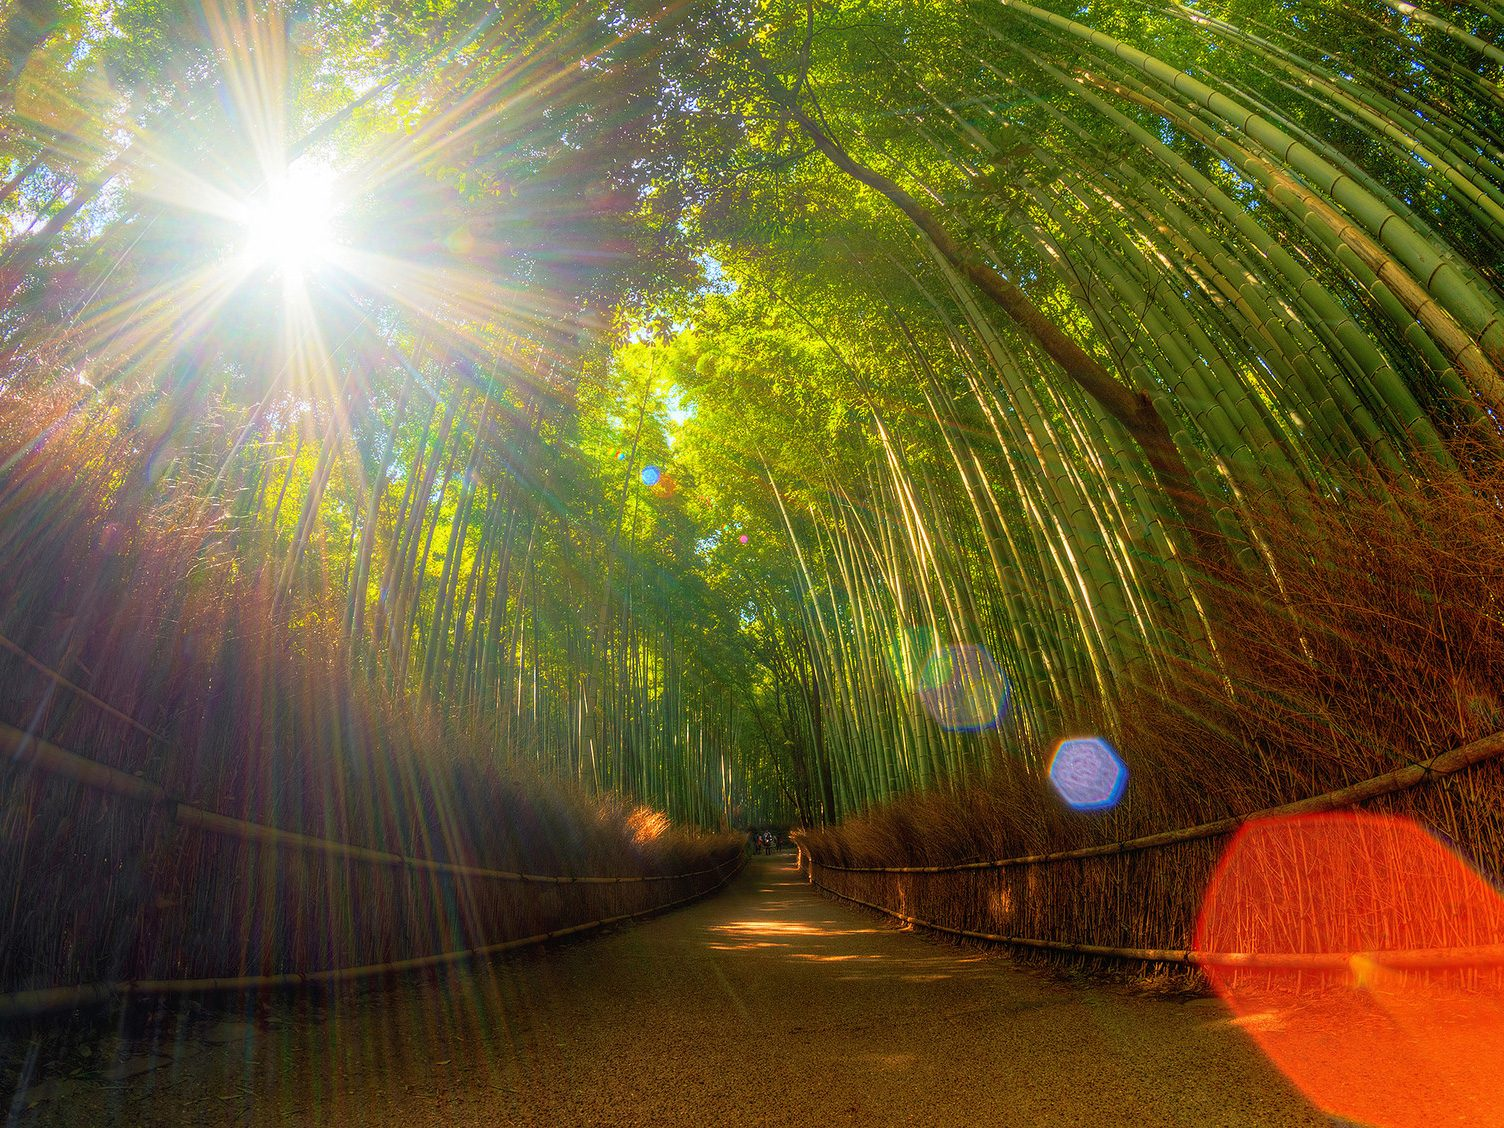 Natural Wonder: Bamboo Grove, Japan